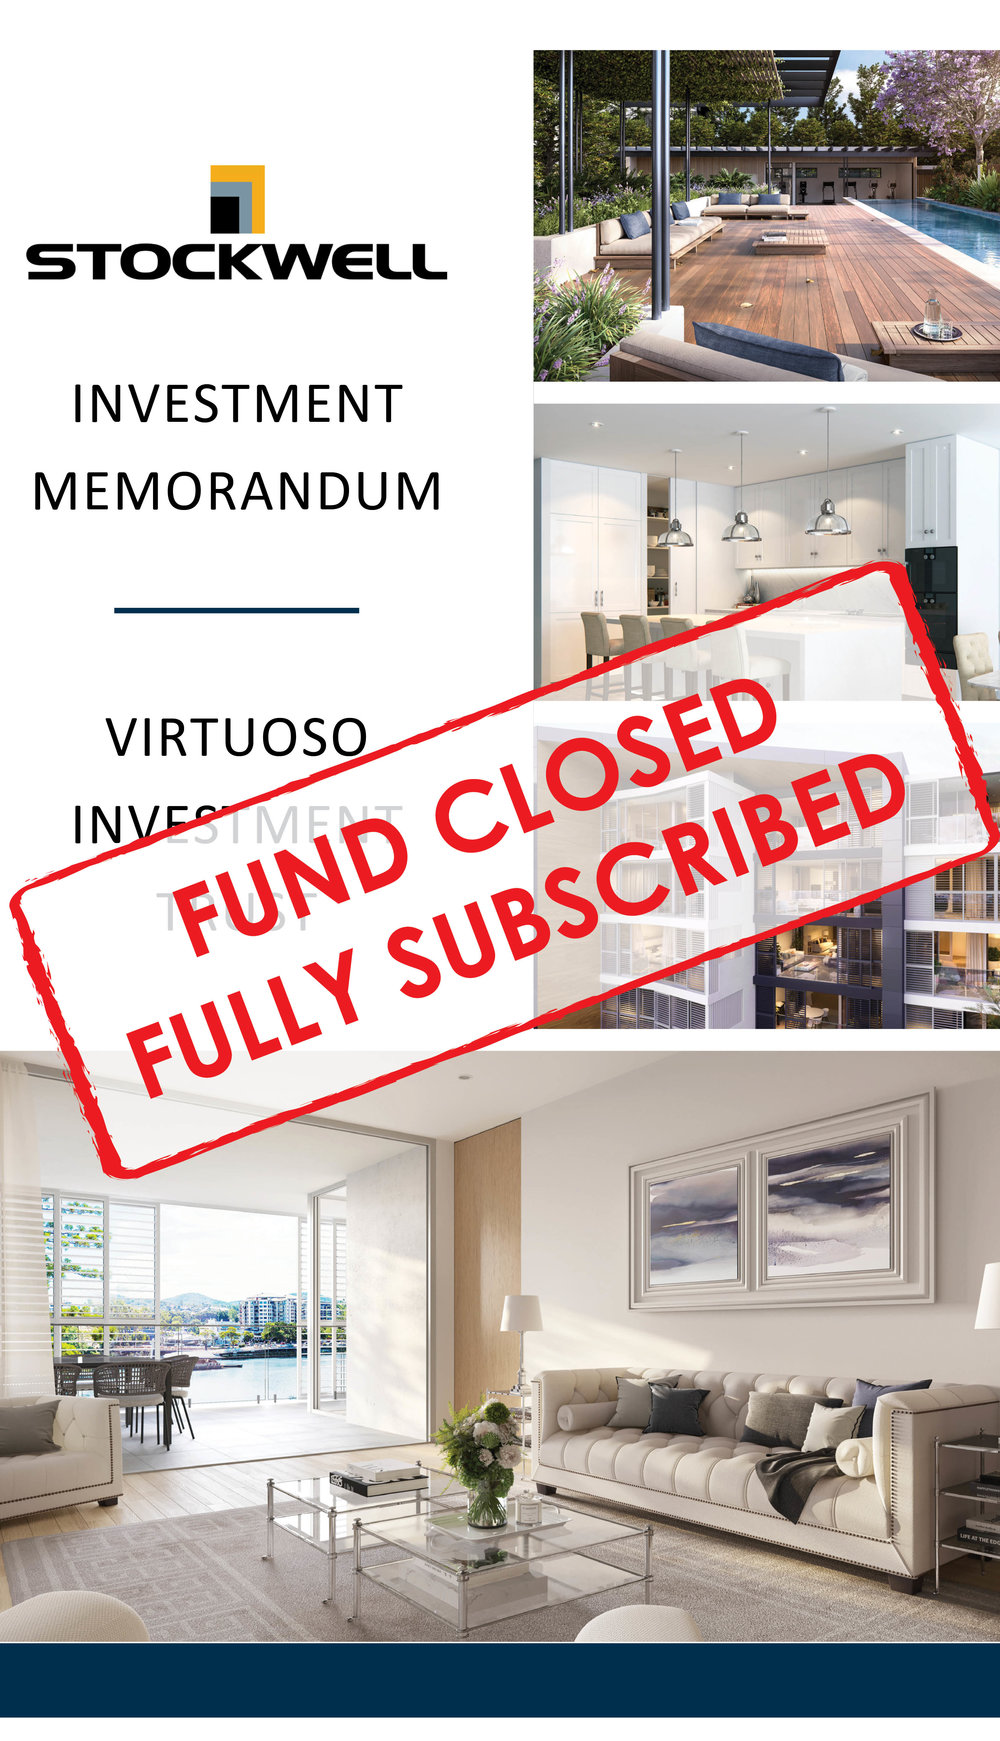 Virtuoso Investment Trust - FULLY SUSCRIBED